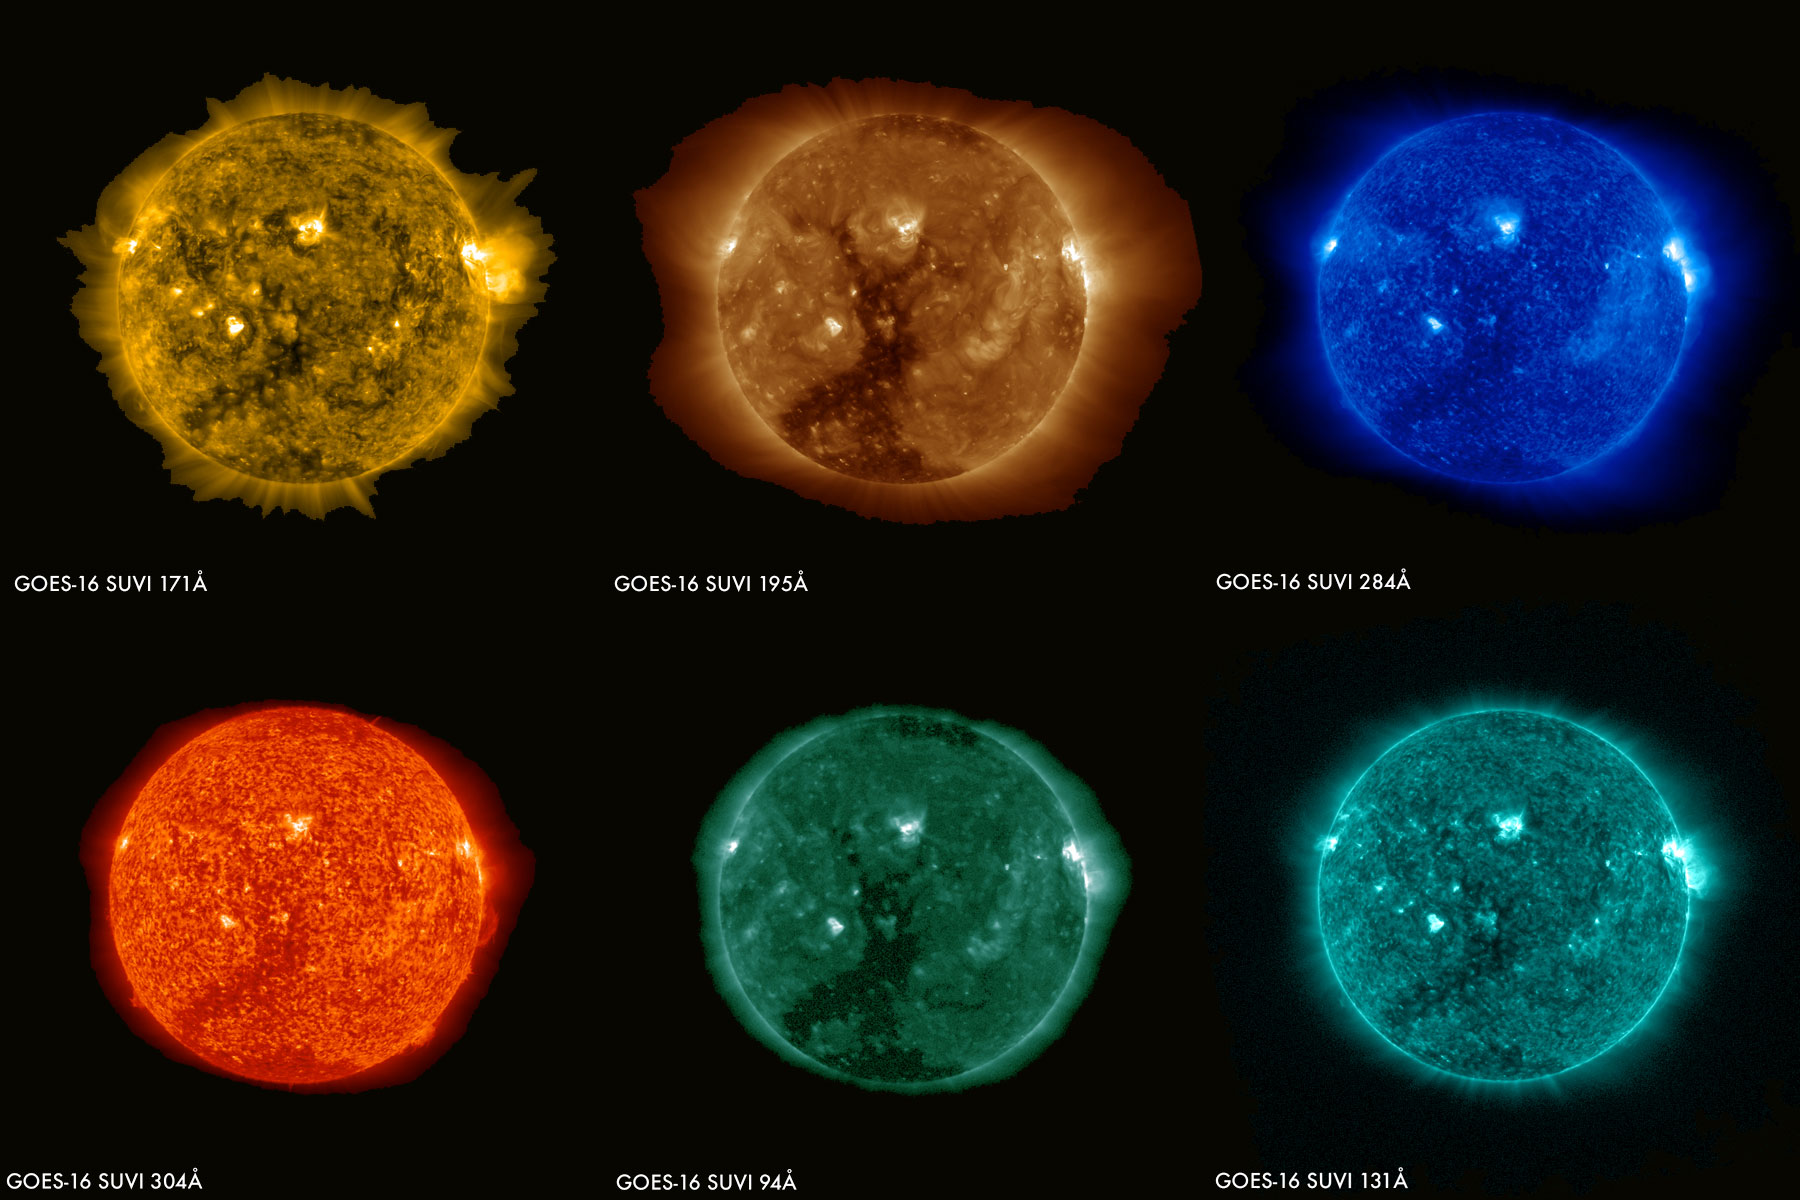 These images of the sun were captured at the same time on January 29, 2017 by the six channels on the SUVI instrument on board GOES-16.